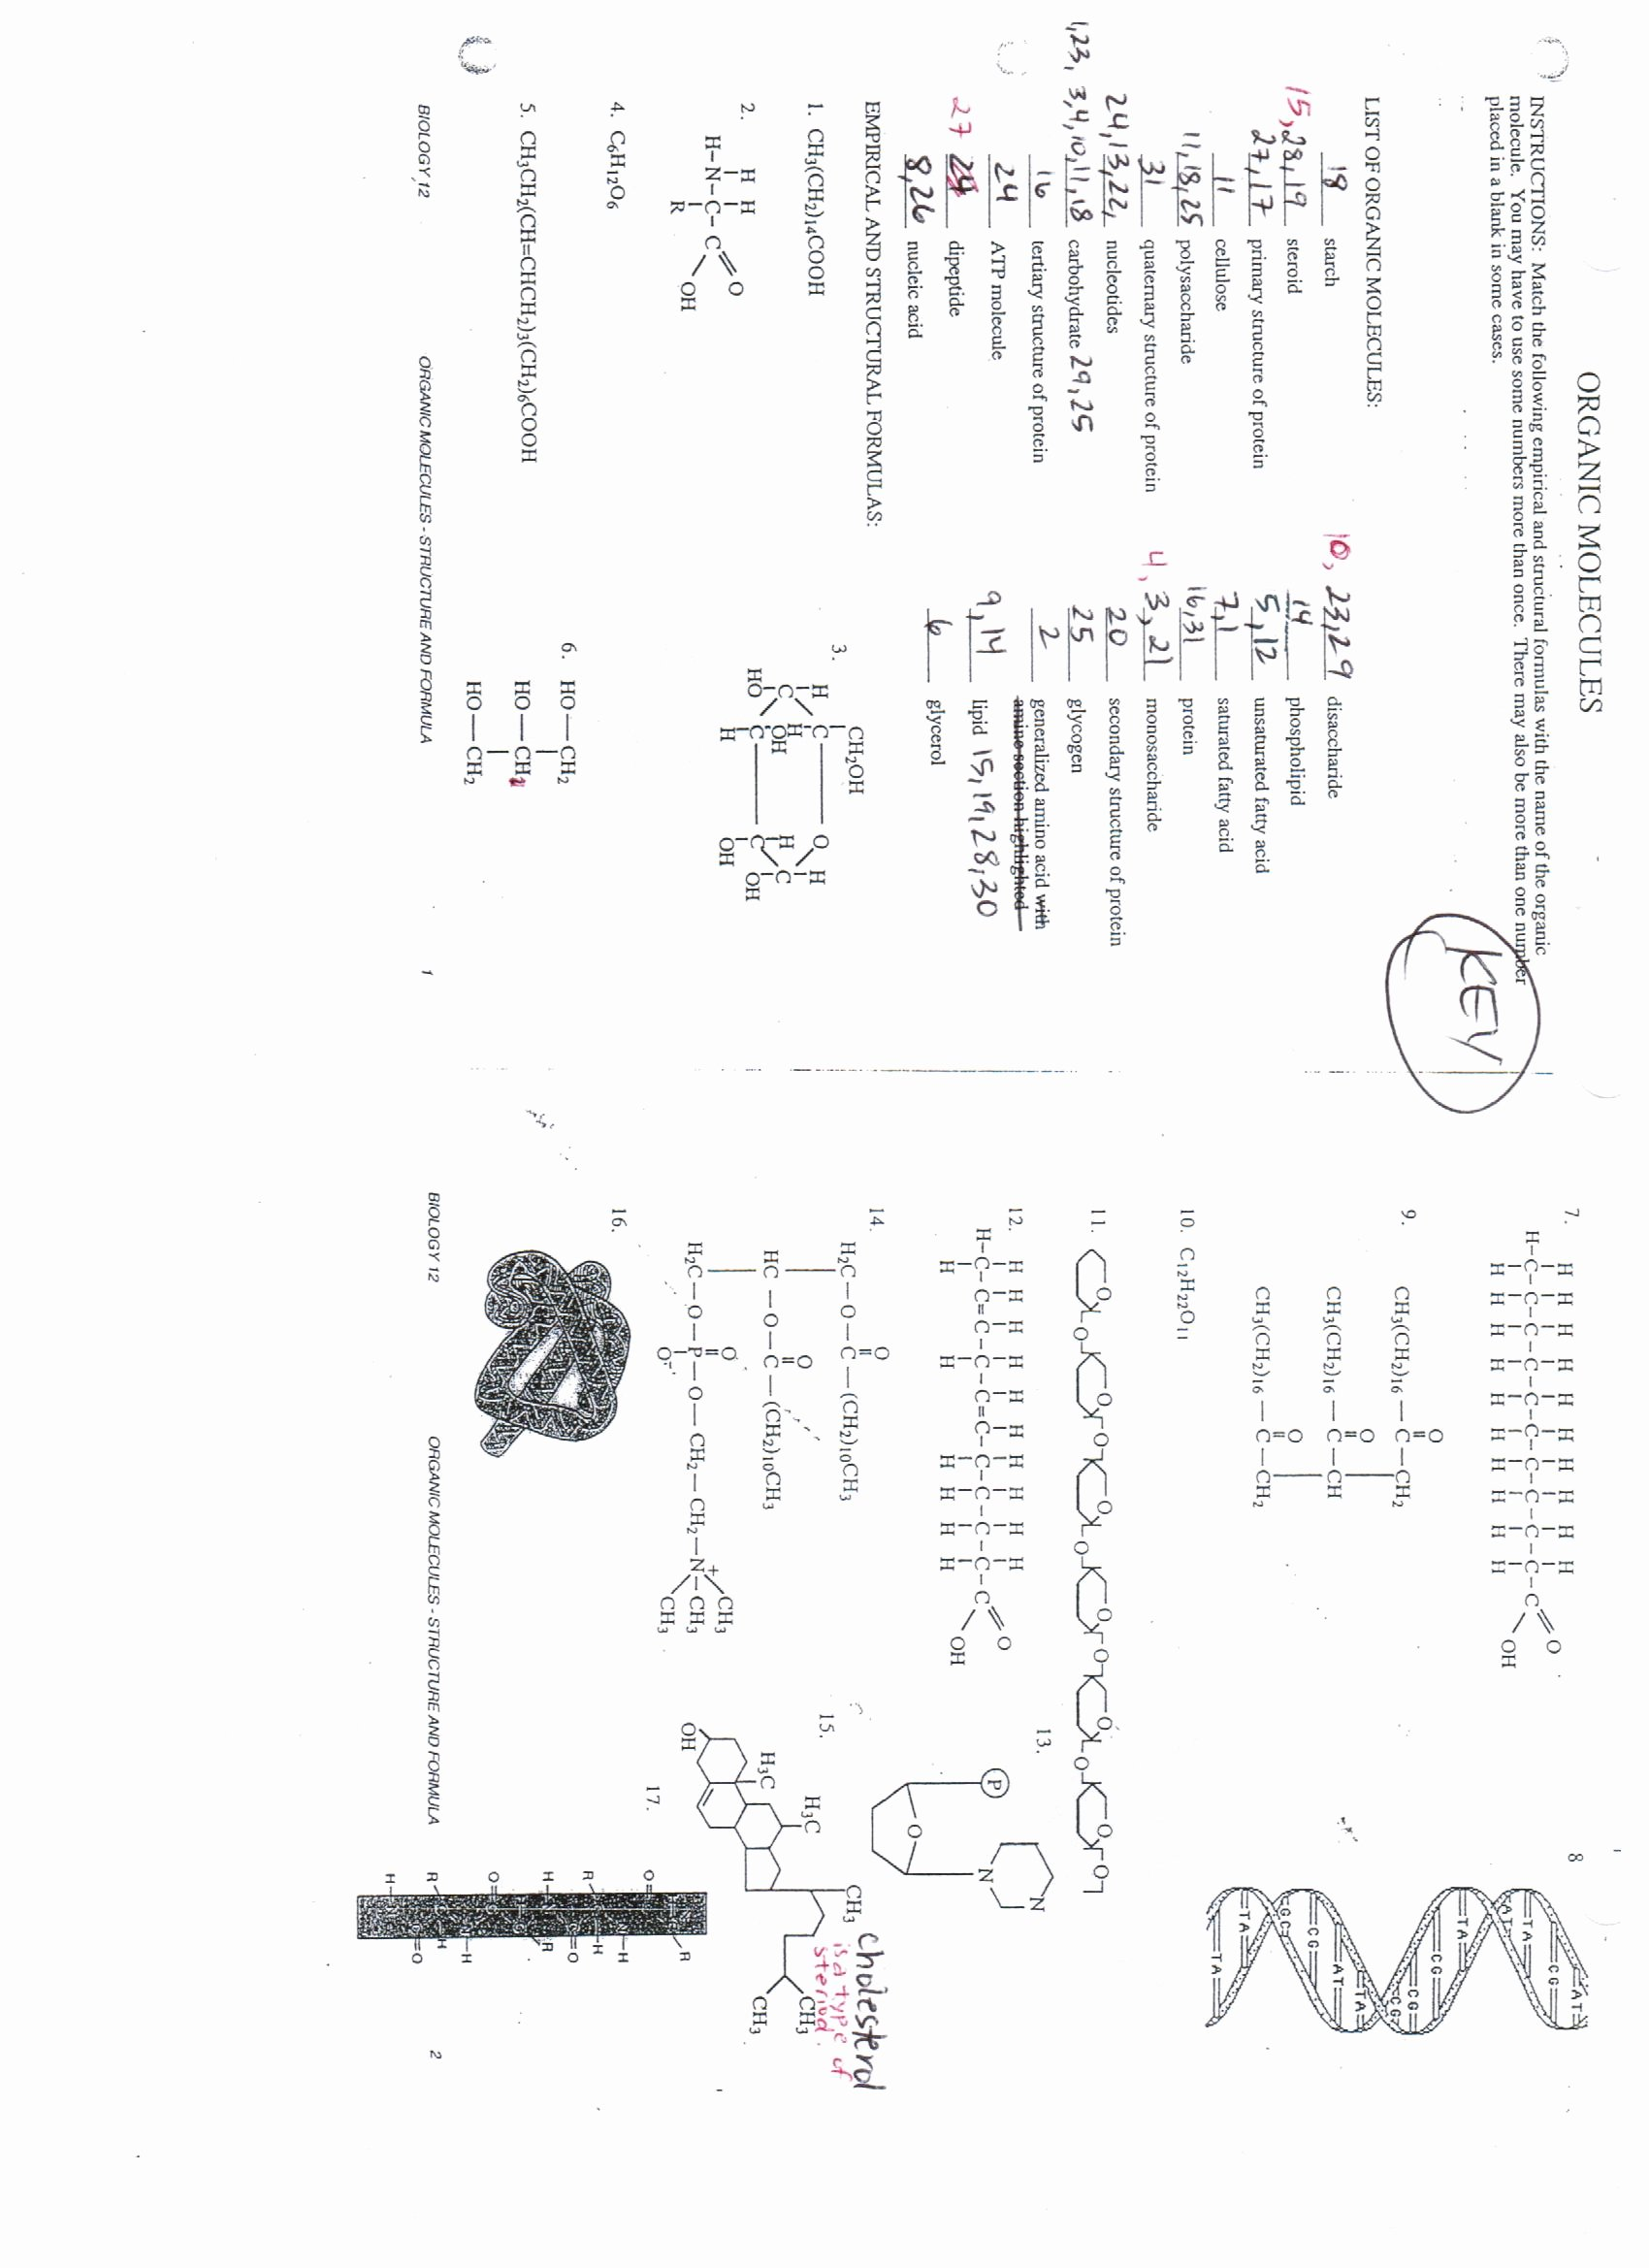 Nucleic Acids Worksheet Answers Luxury Answers Lipids Nucleic Acids and organic Molecules